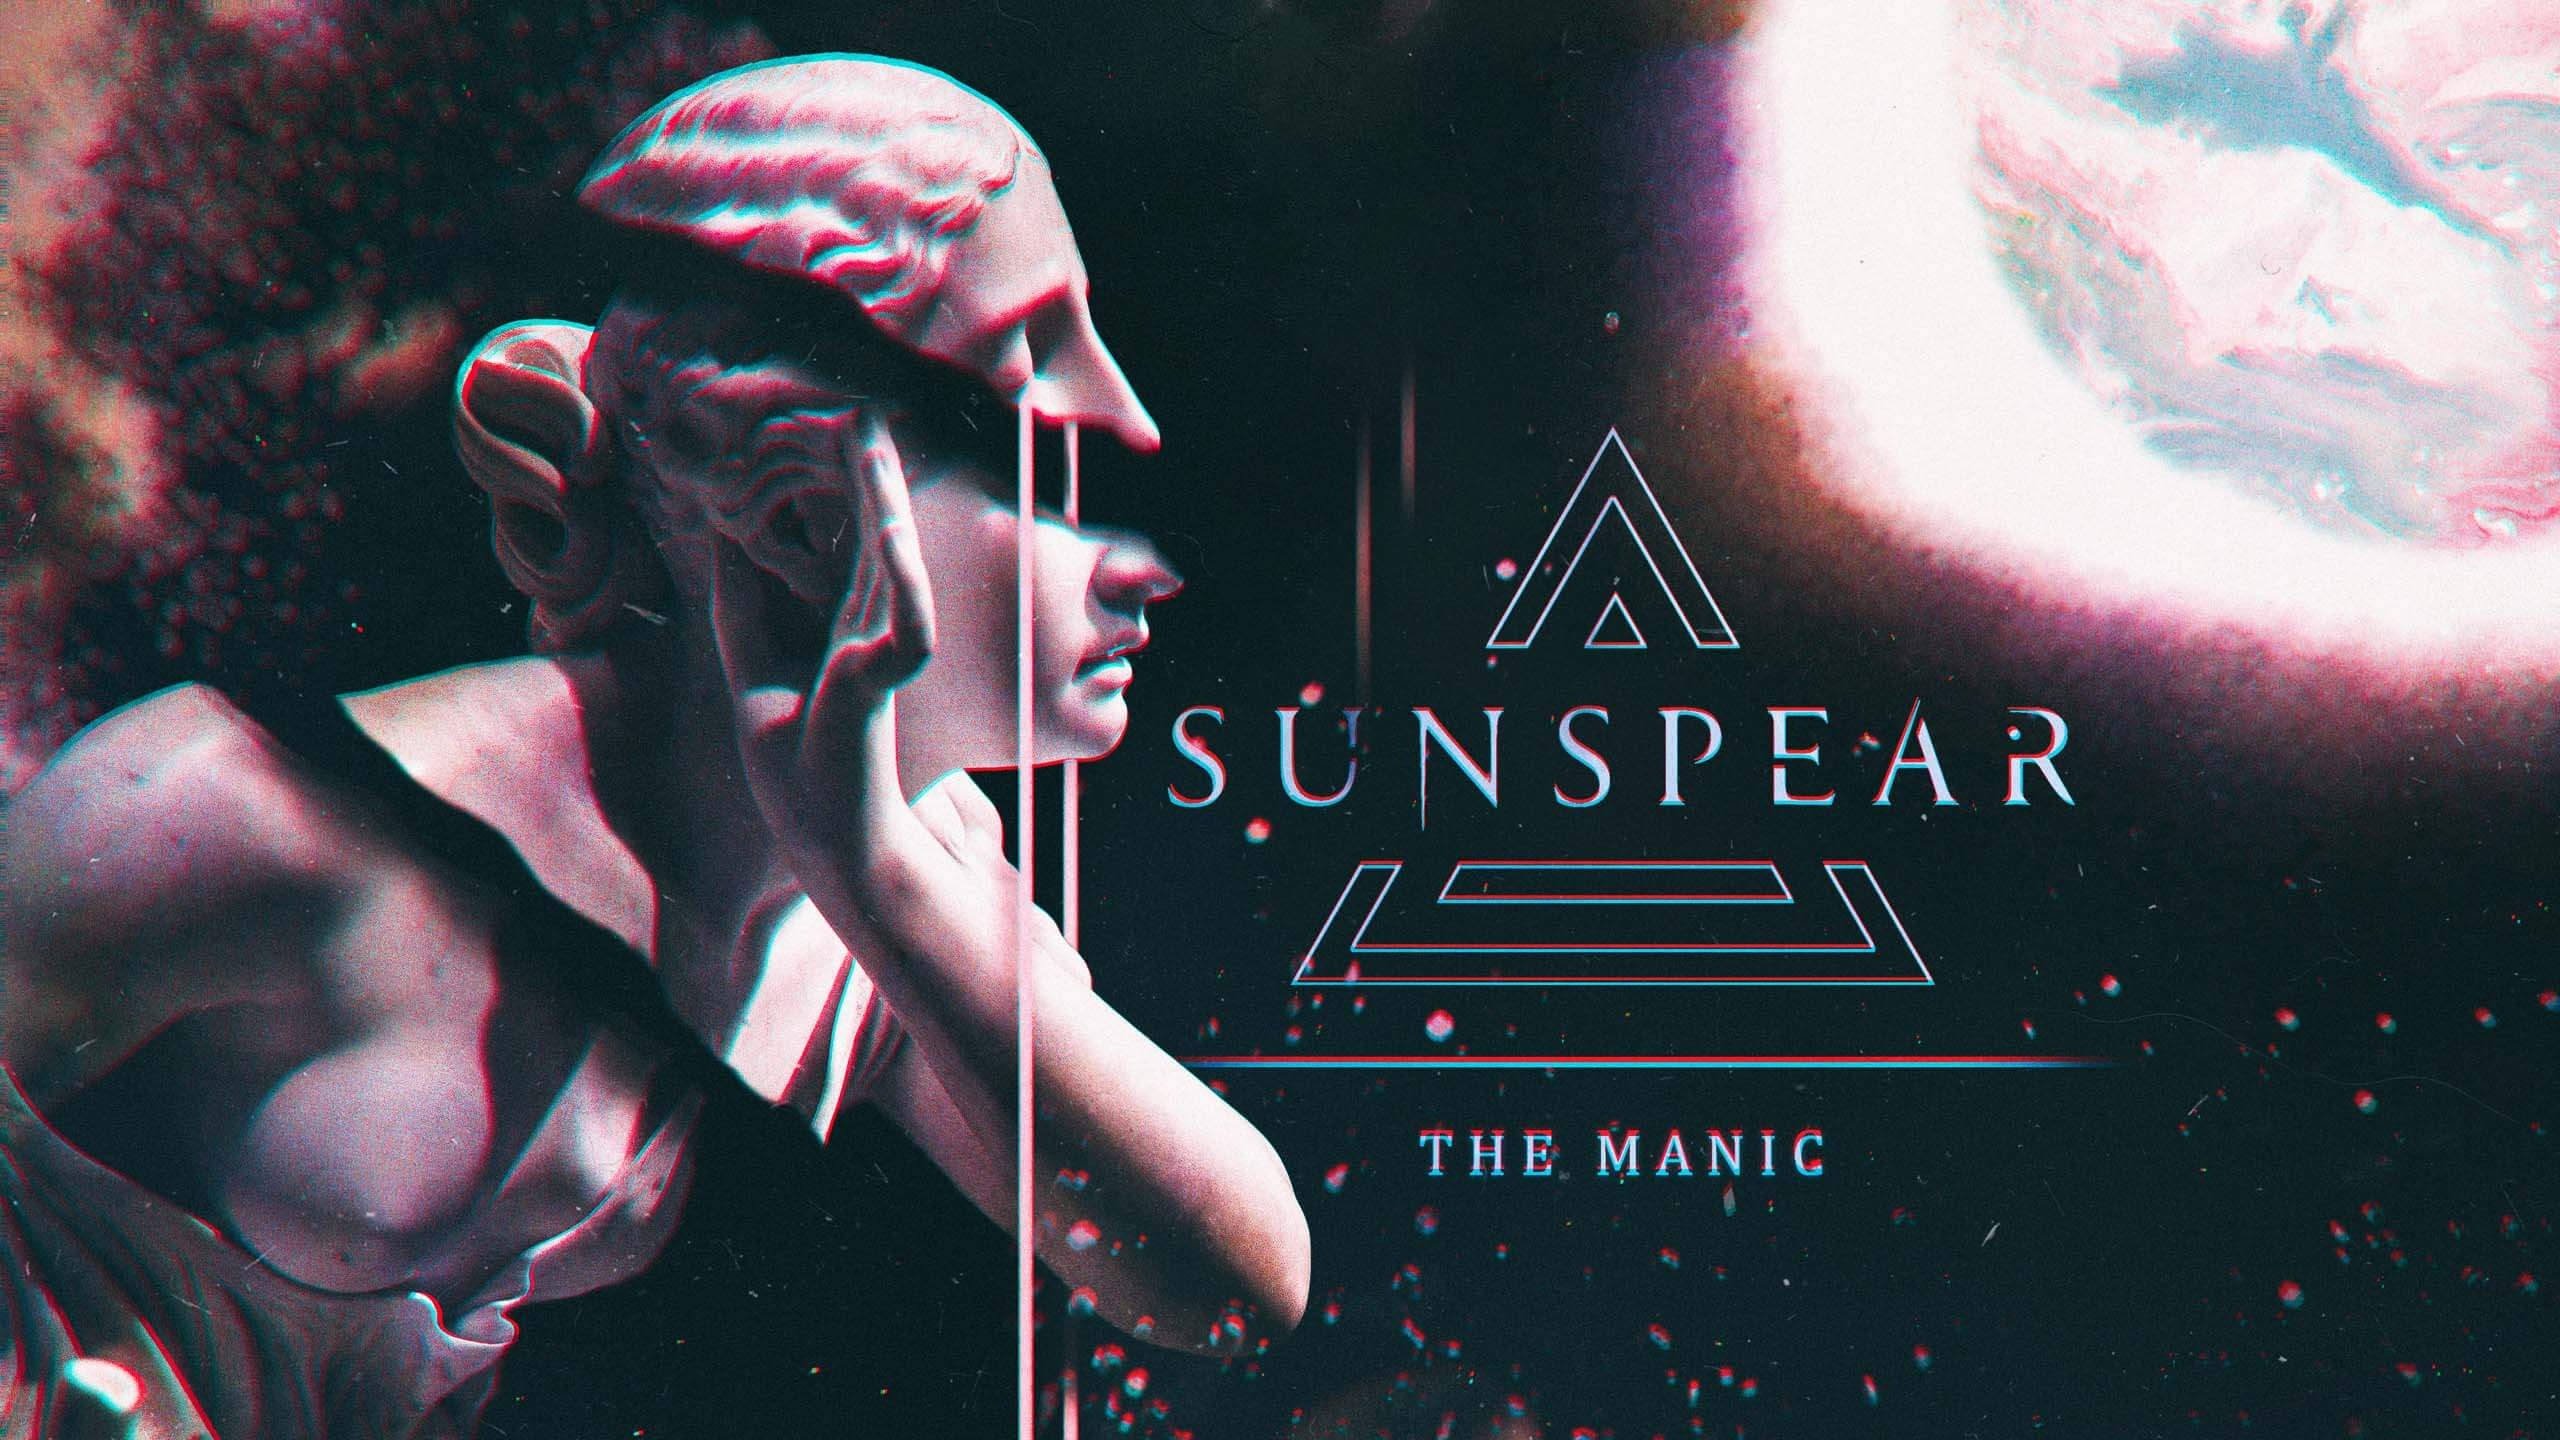 """PREMIERE: SUNSPEAR RELEASE NEW SINGLE """"THE MANIC"""" (TRACK ANALYSIS)"""